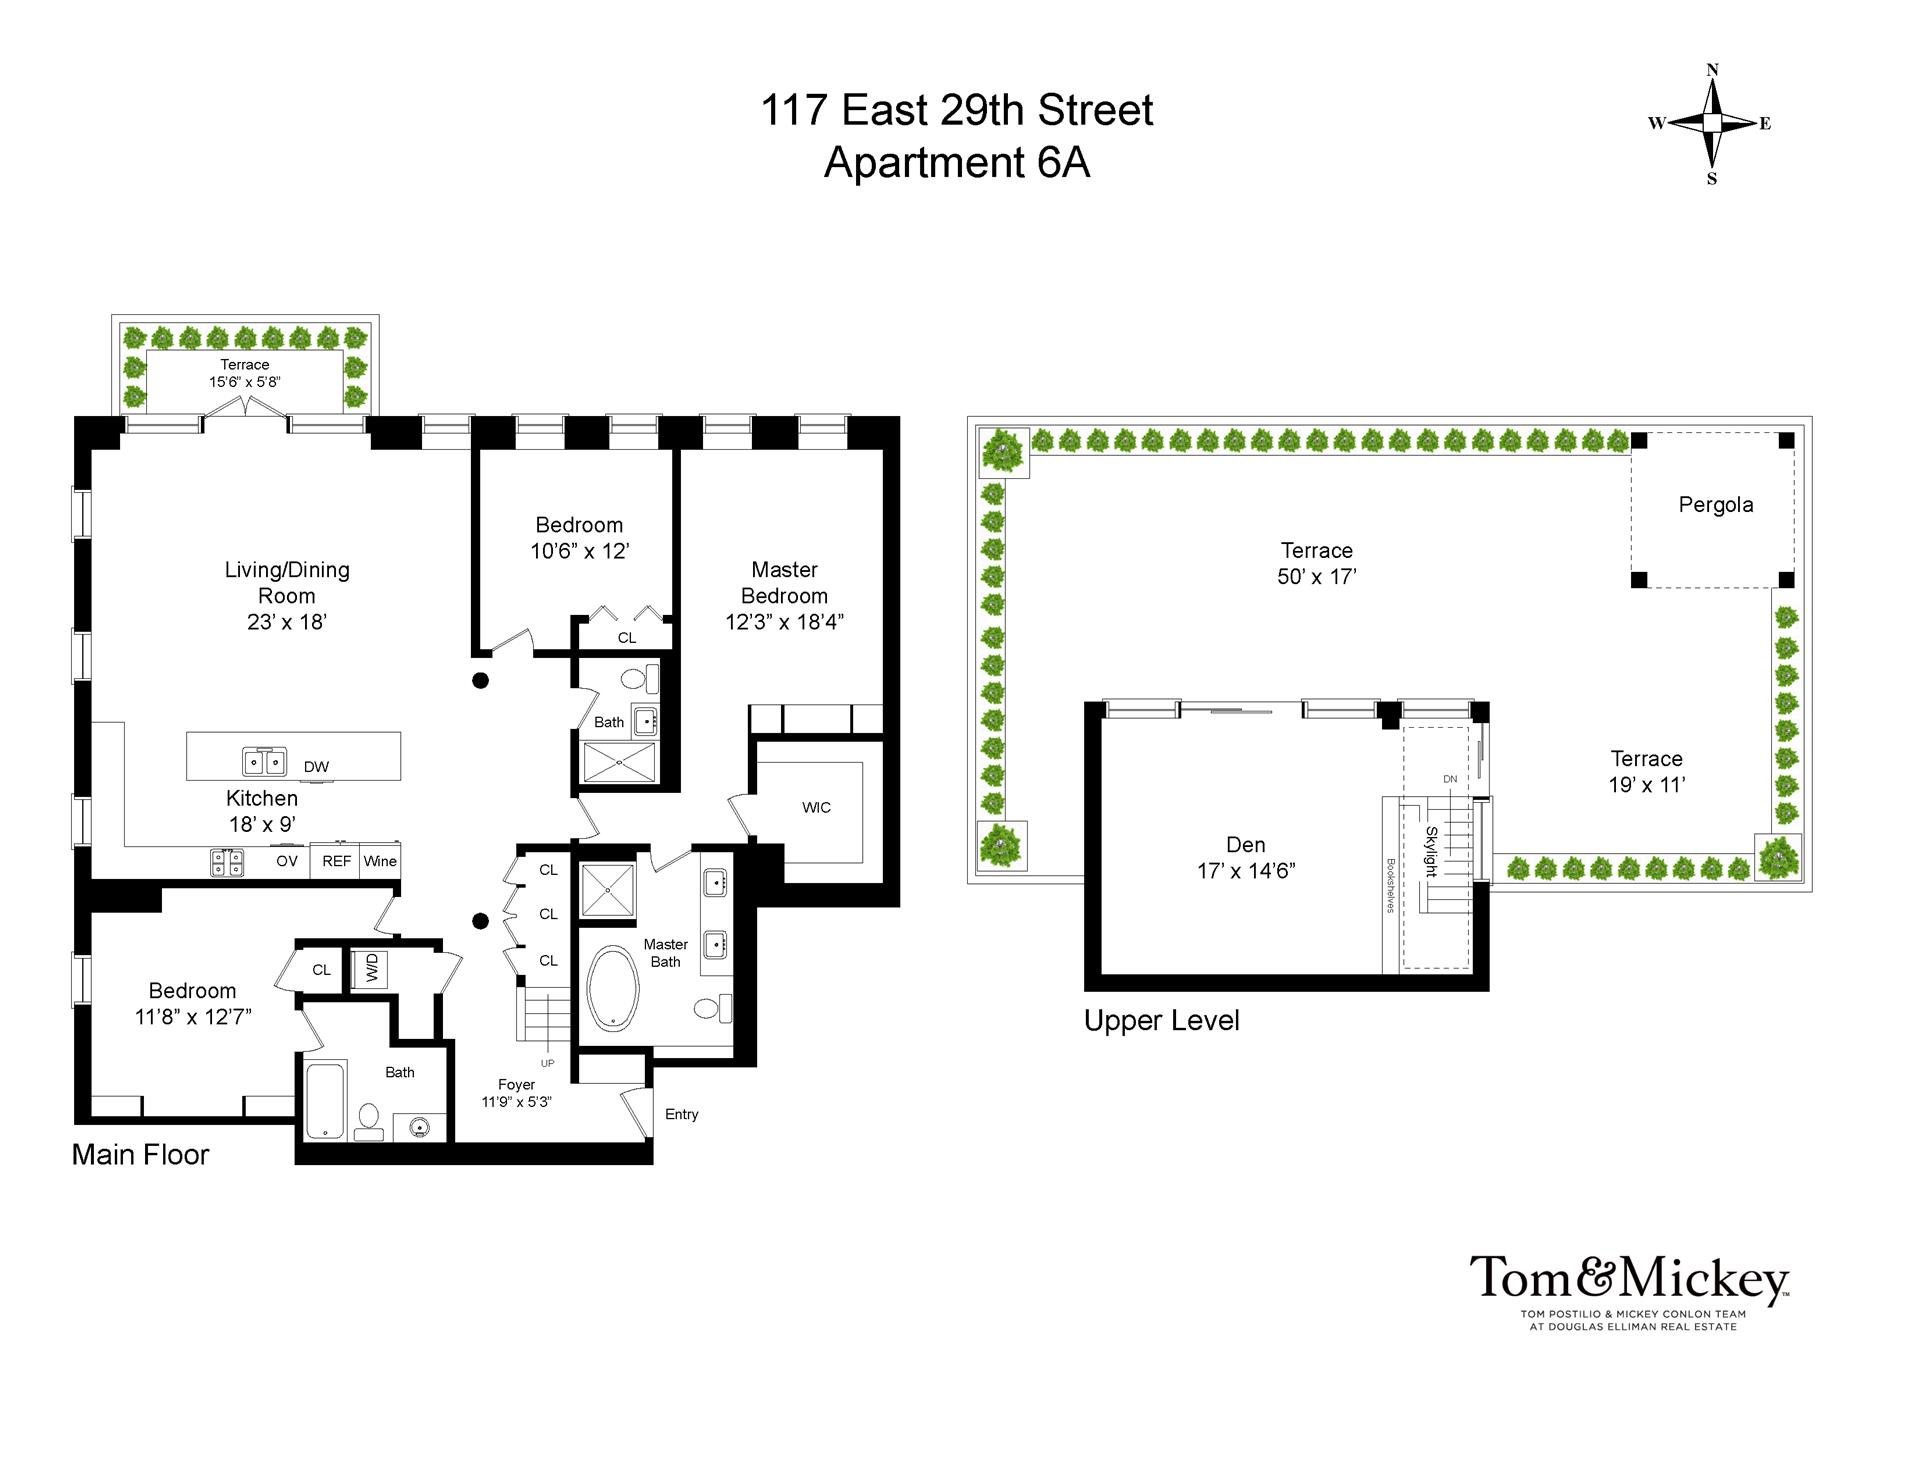 Floor plan of The Park East, 117 East 29th Street, PH6A - NoMad, New York